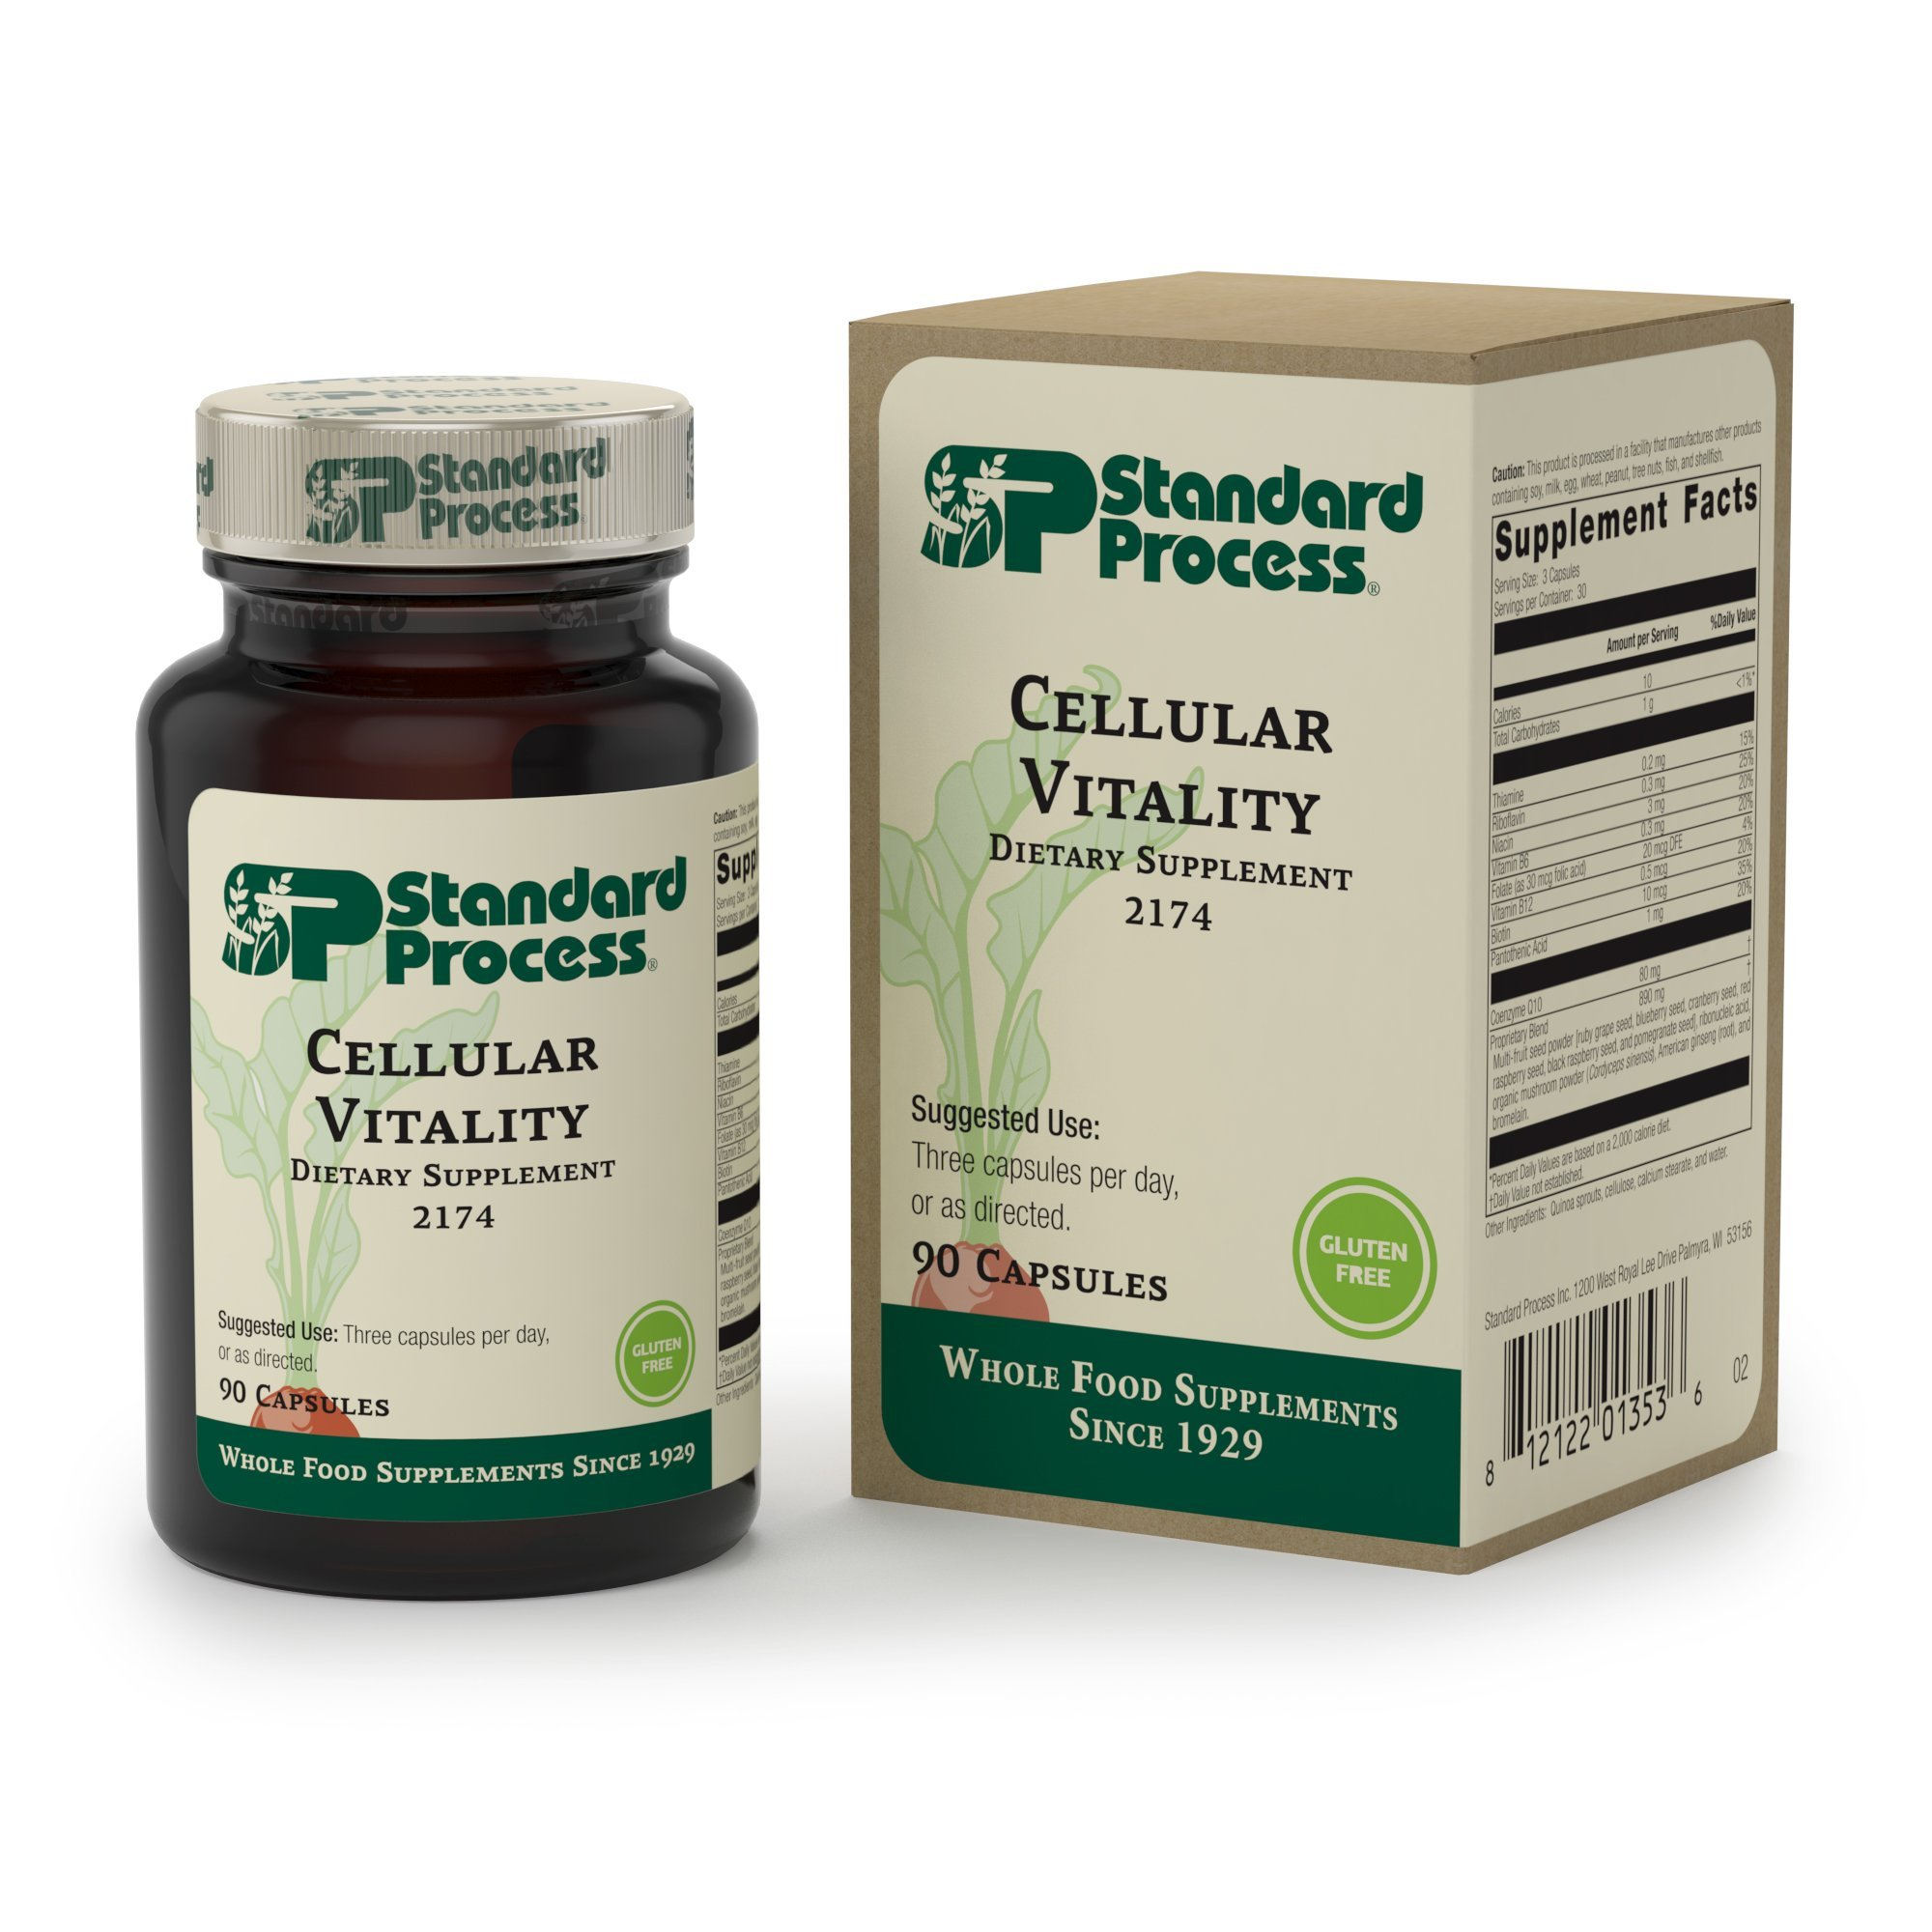 Standard Process - Cellular Vitality - Vitamin B1, B2, B6, Folate, B12, Biotin, CoQ10, Supports Healthy Cellular Processes and Provides Antioxidant Activity, Gluten Free and Vegetarian - 90 Capsules by Standard Process (Image #1)